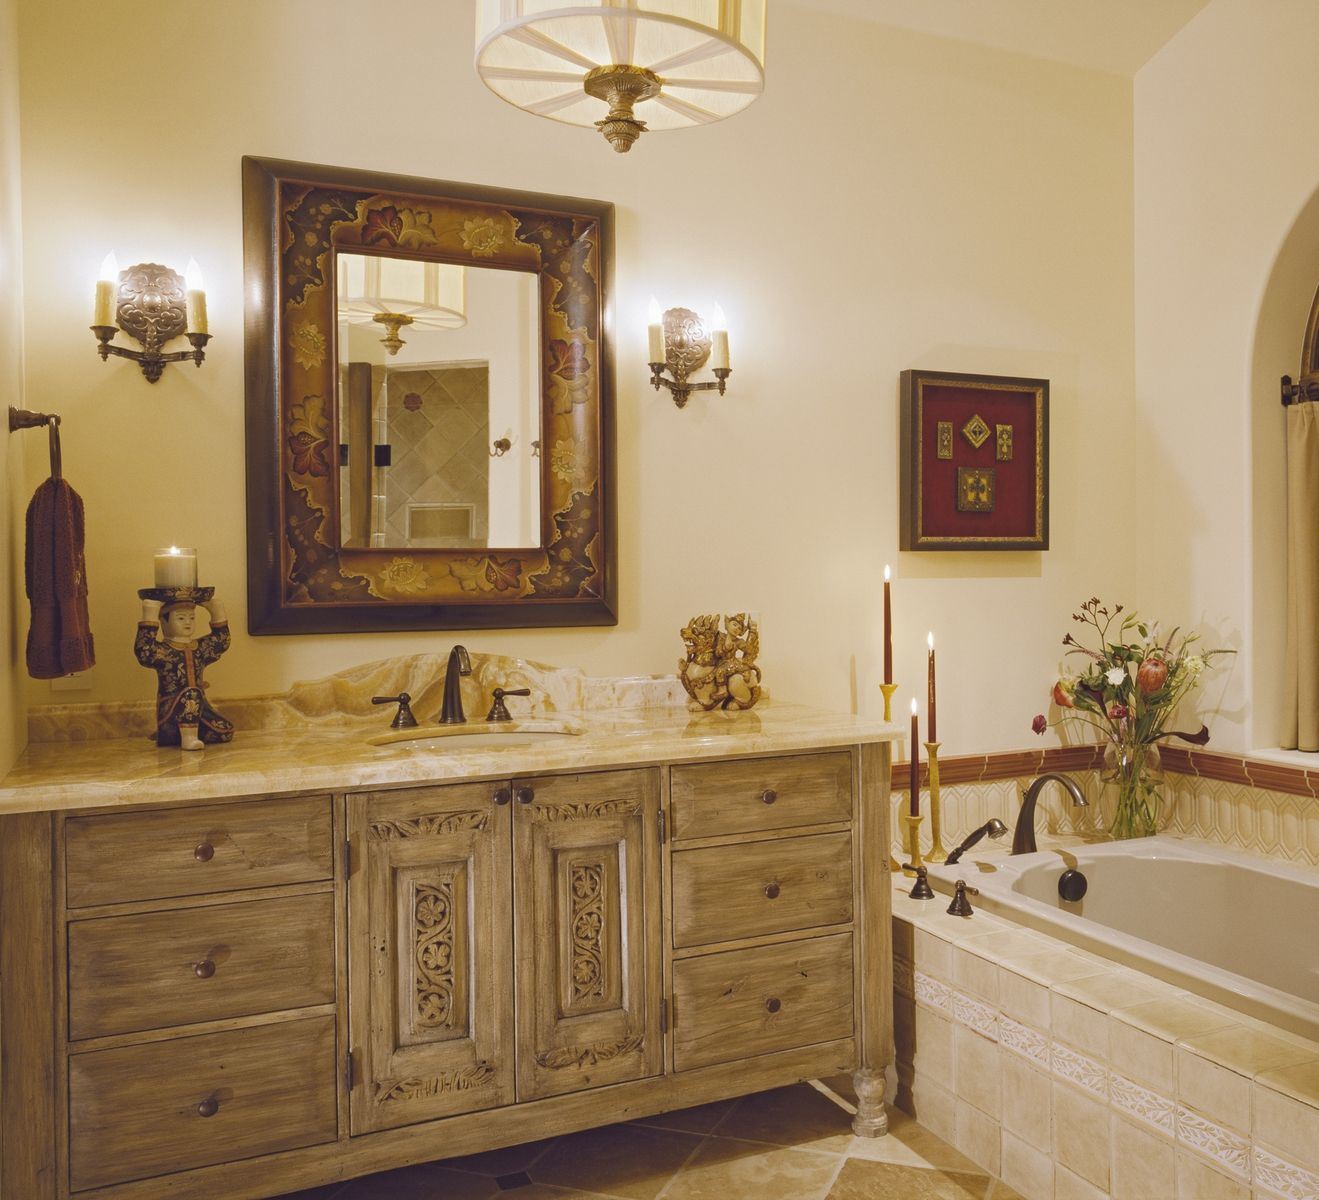 Hand Made Bathroom Vanity Cabinetry  2nd Master Bath by Tilde Design Studio  CustomMadecom